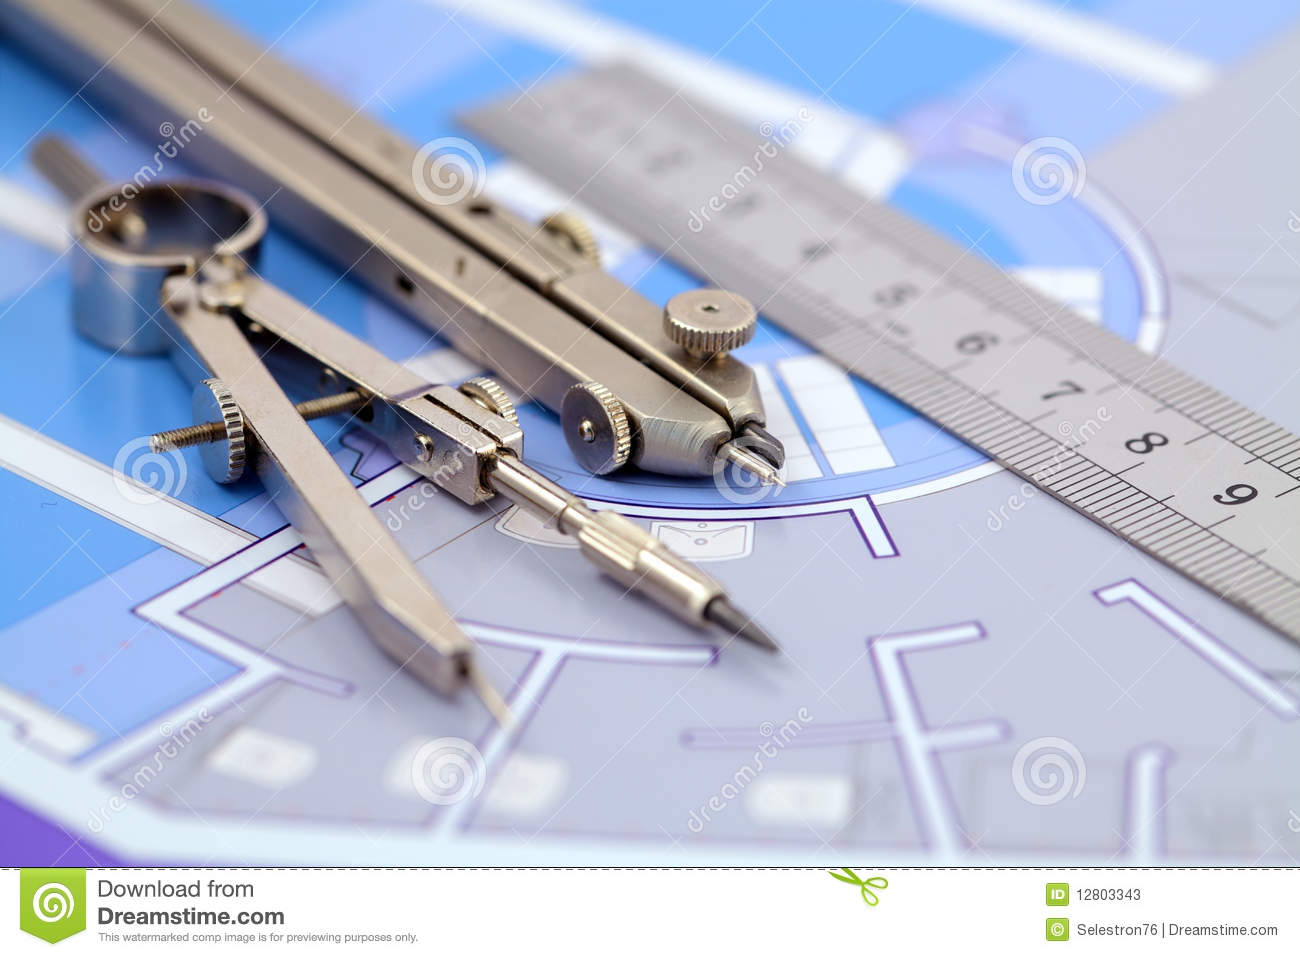 Architecture plan tools stock photos image 12803343 for Planning tools